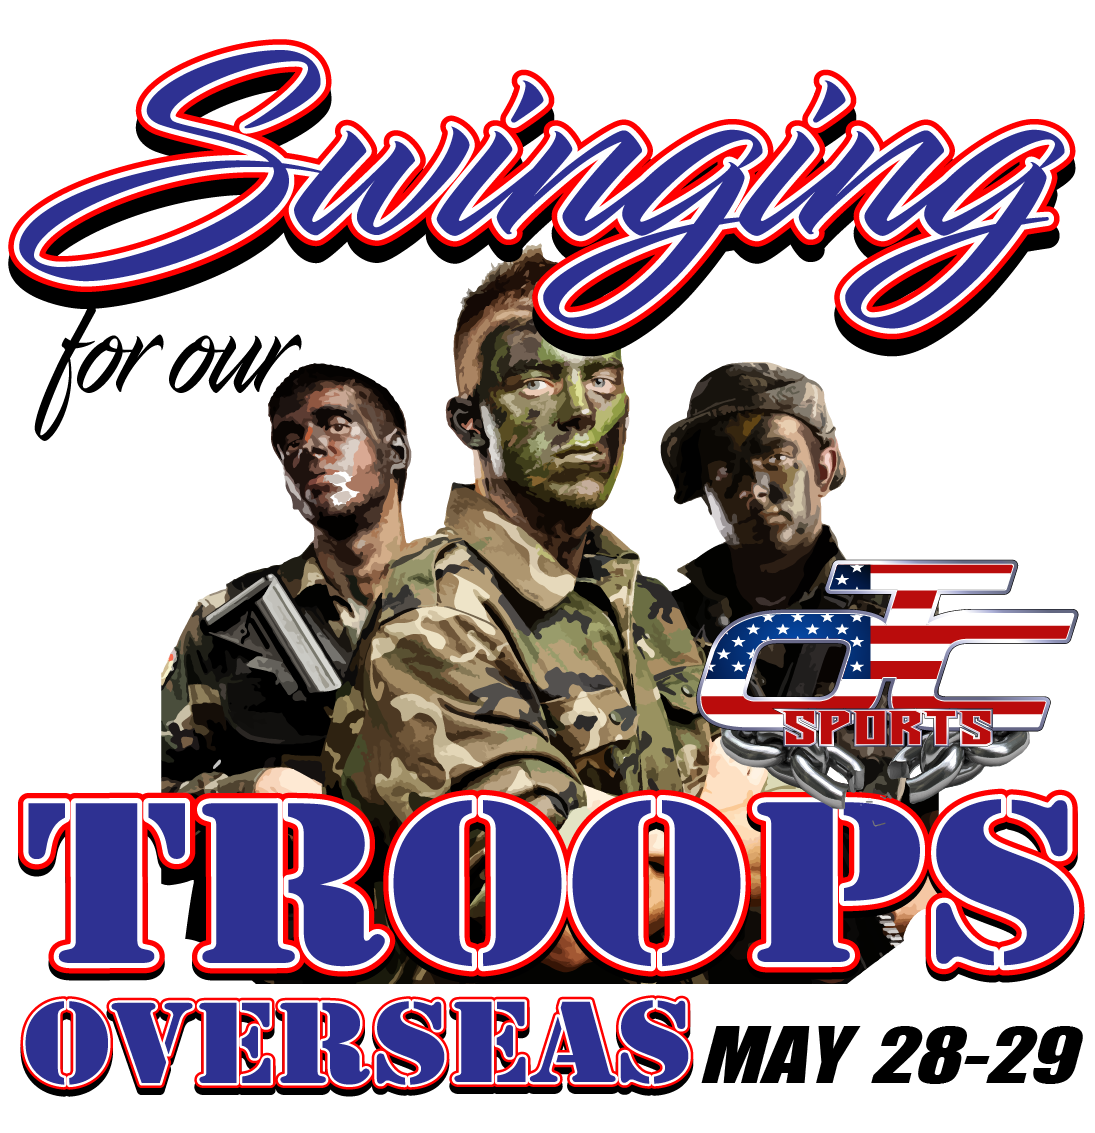 Swinging For Our Troops Overseas! Logo